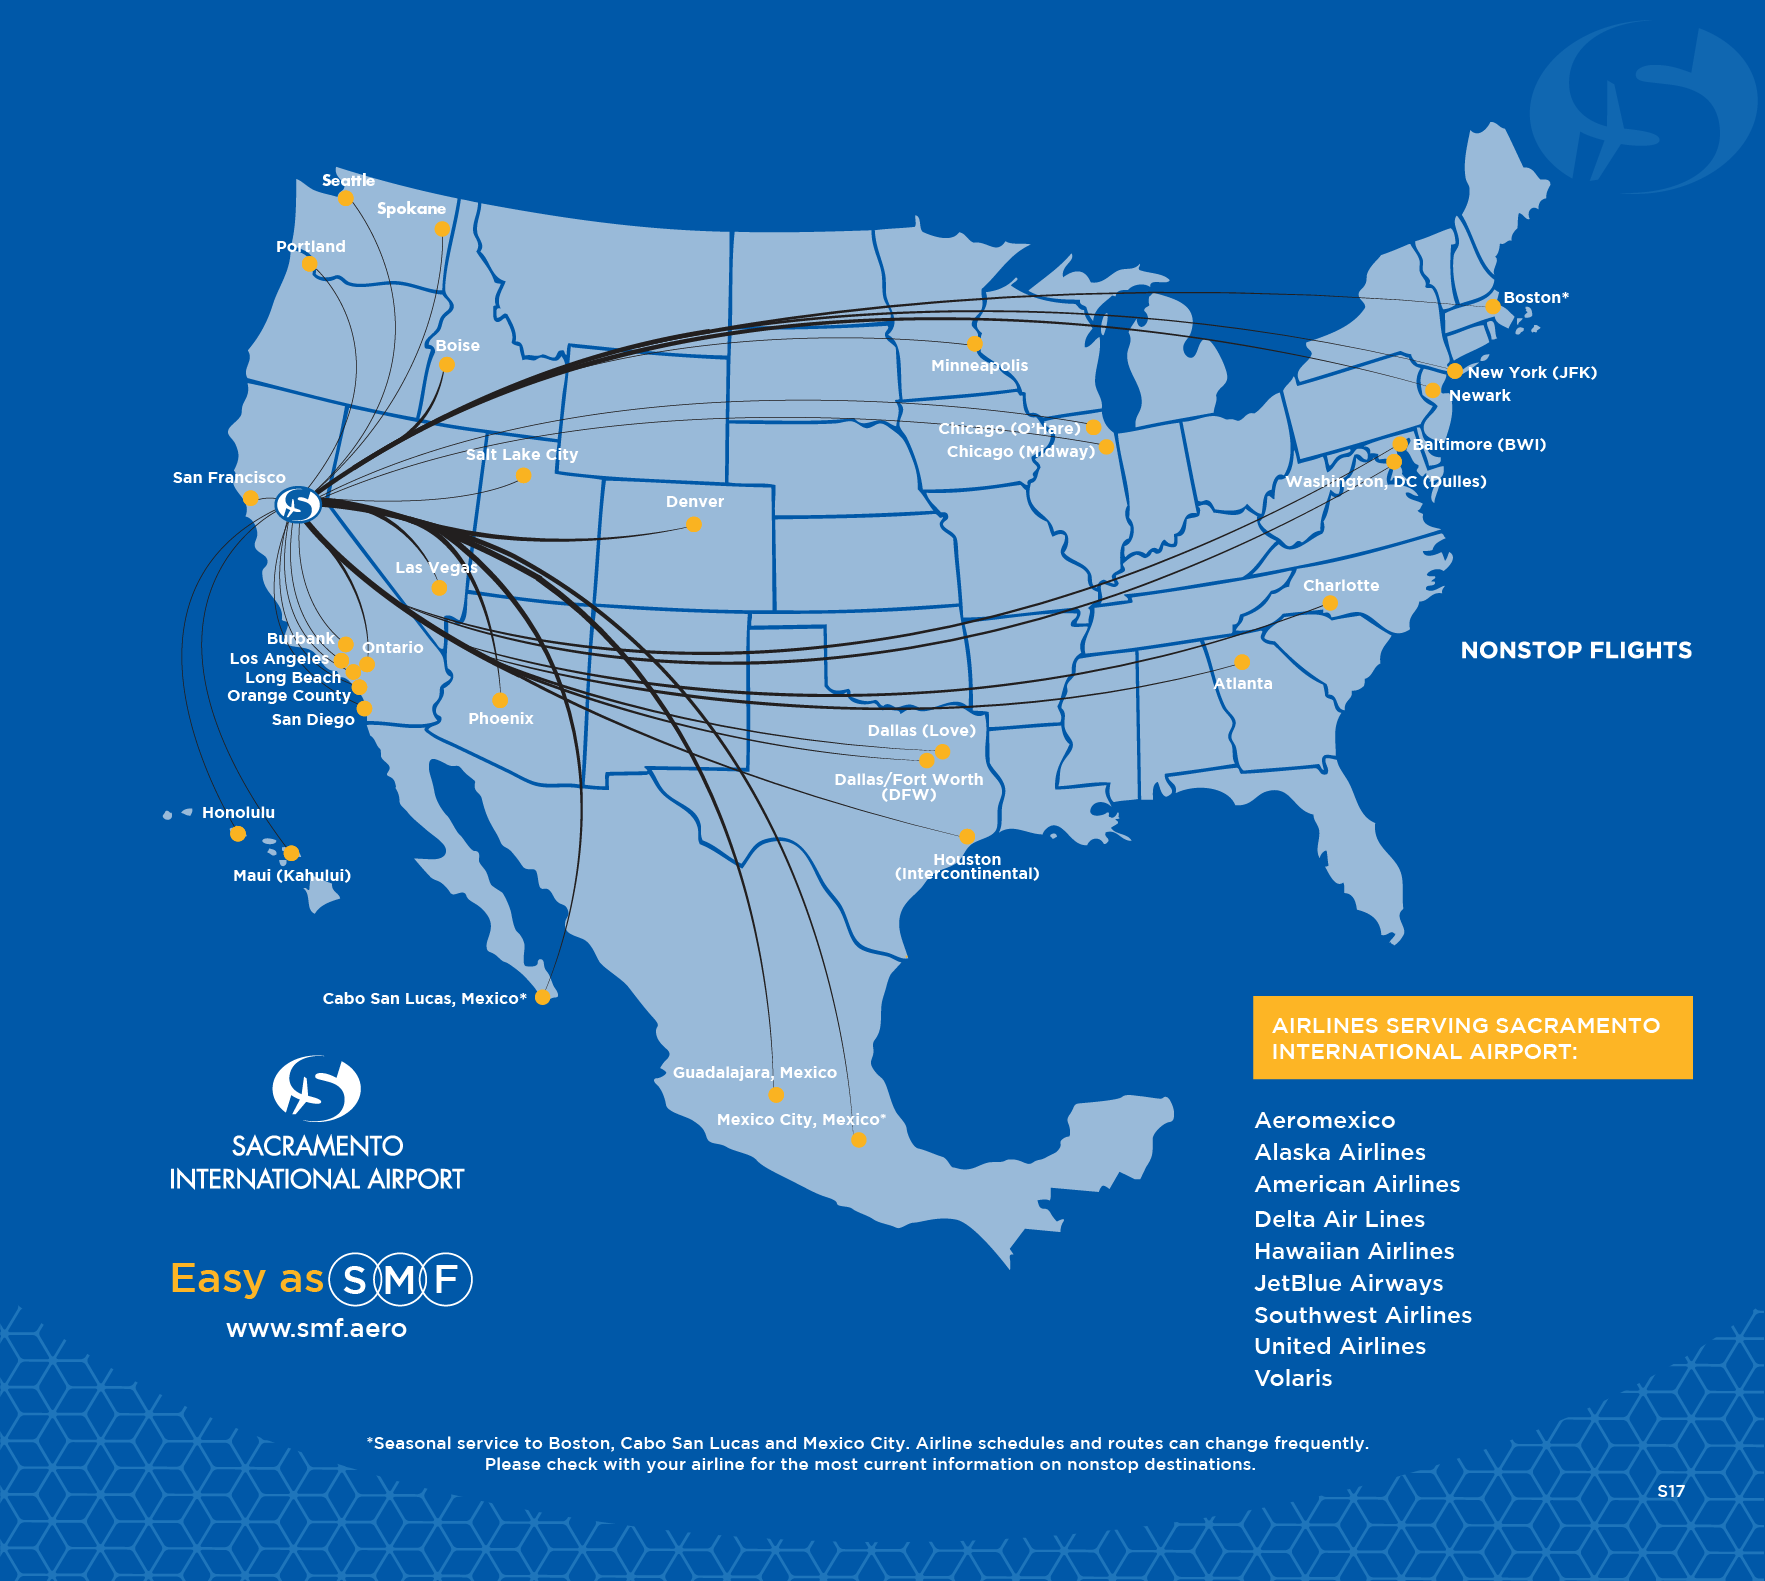 SMF Nonstop Destinations - Airport map of northeast coast of us